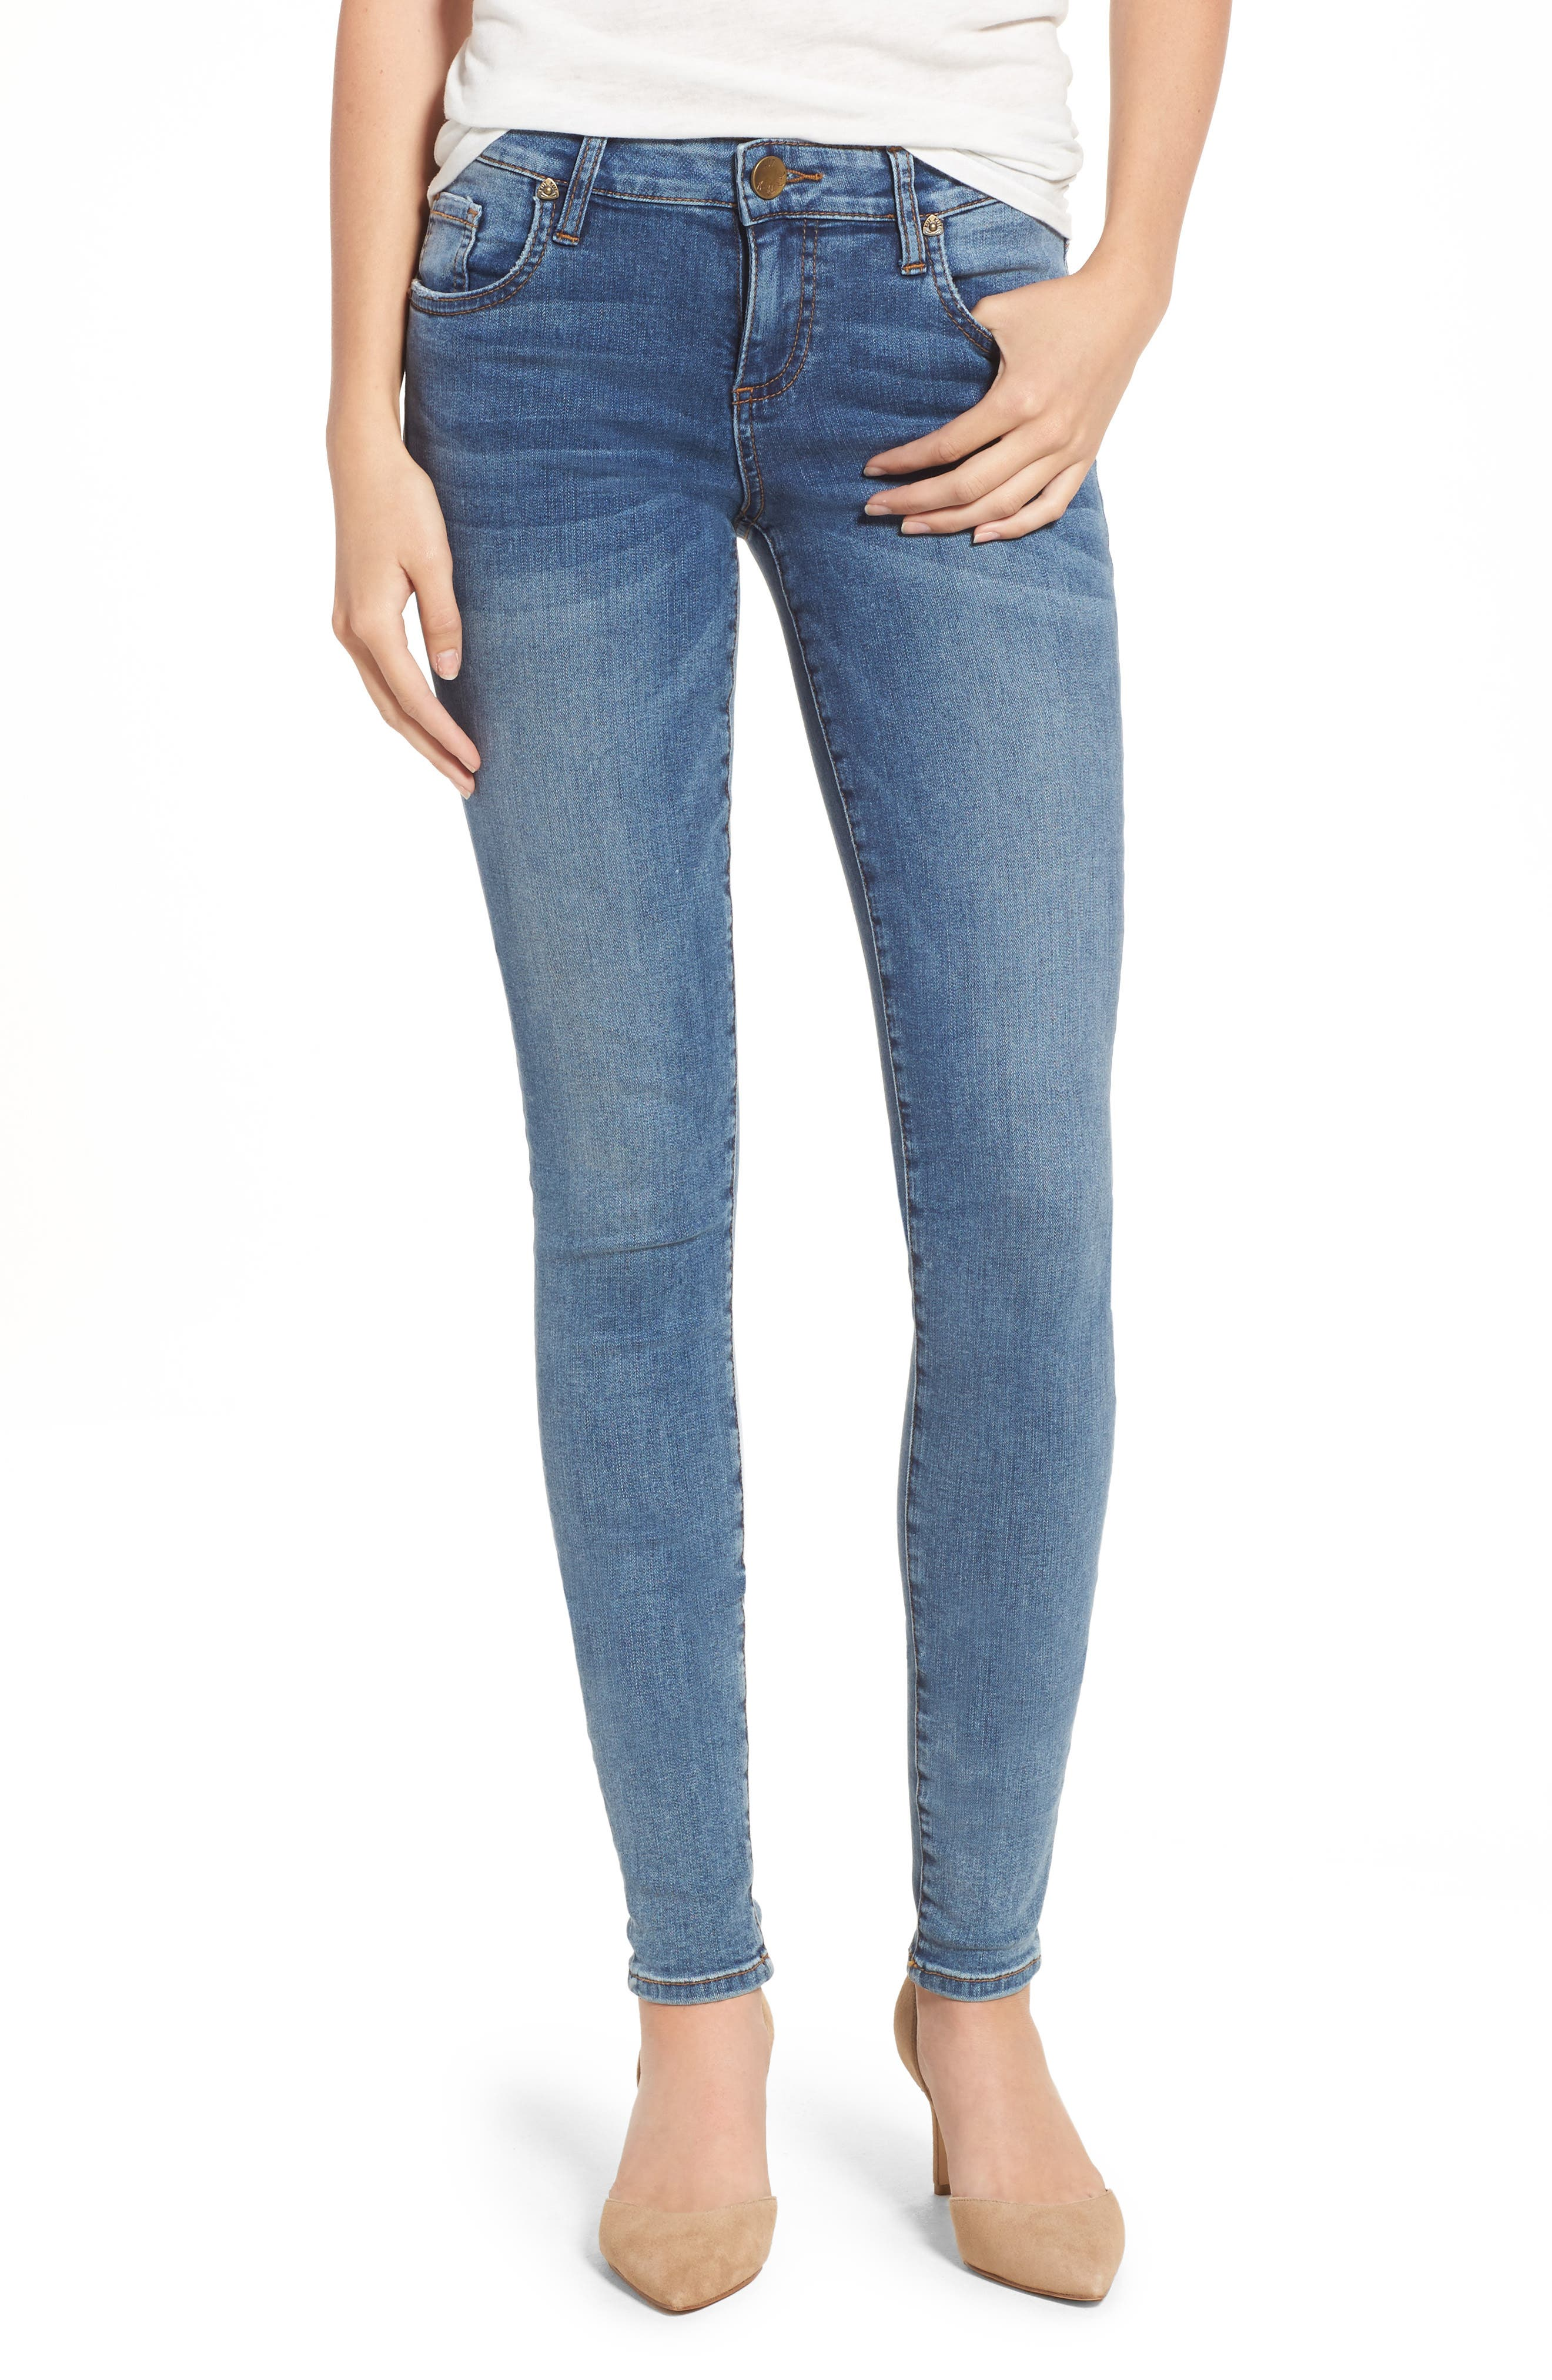 Alternate Image 1 Selected - KUT from the Kloth Donna Skinny Jeans (Venturesome)